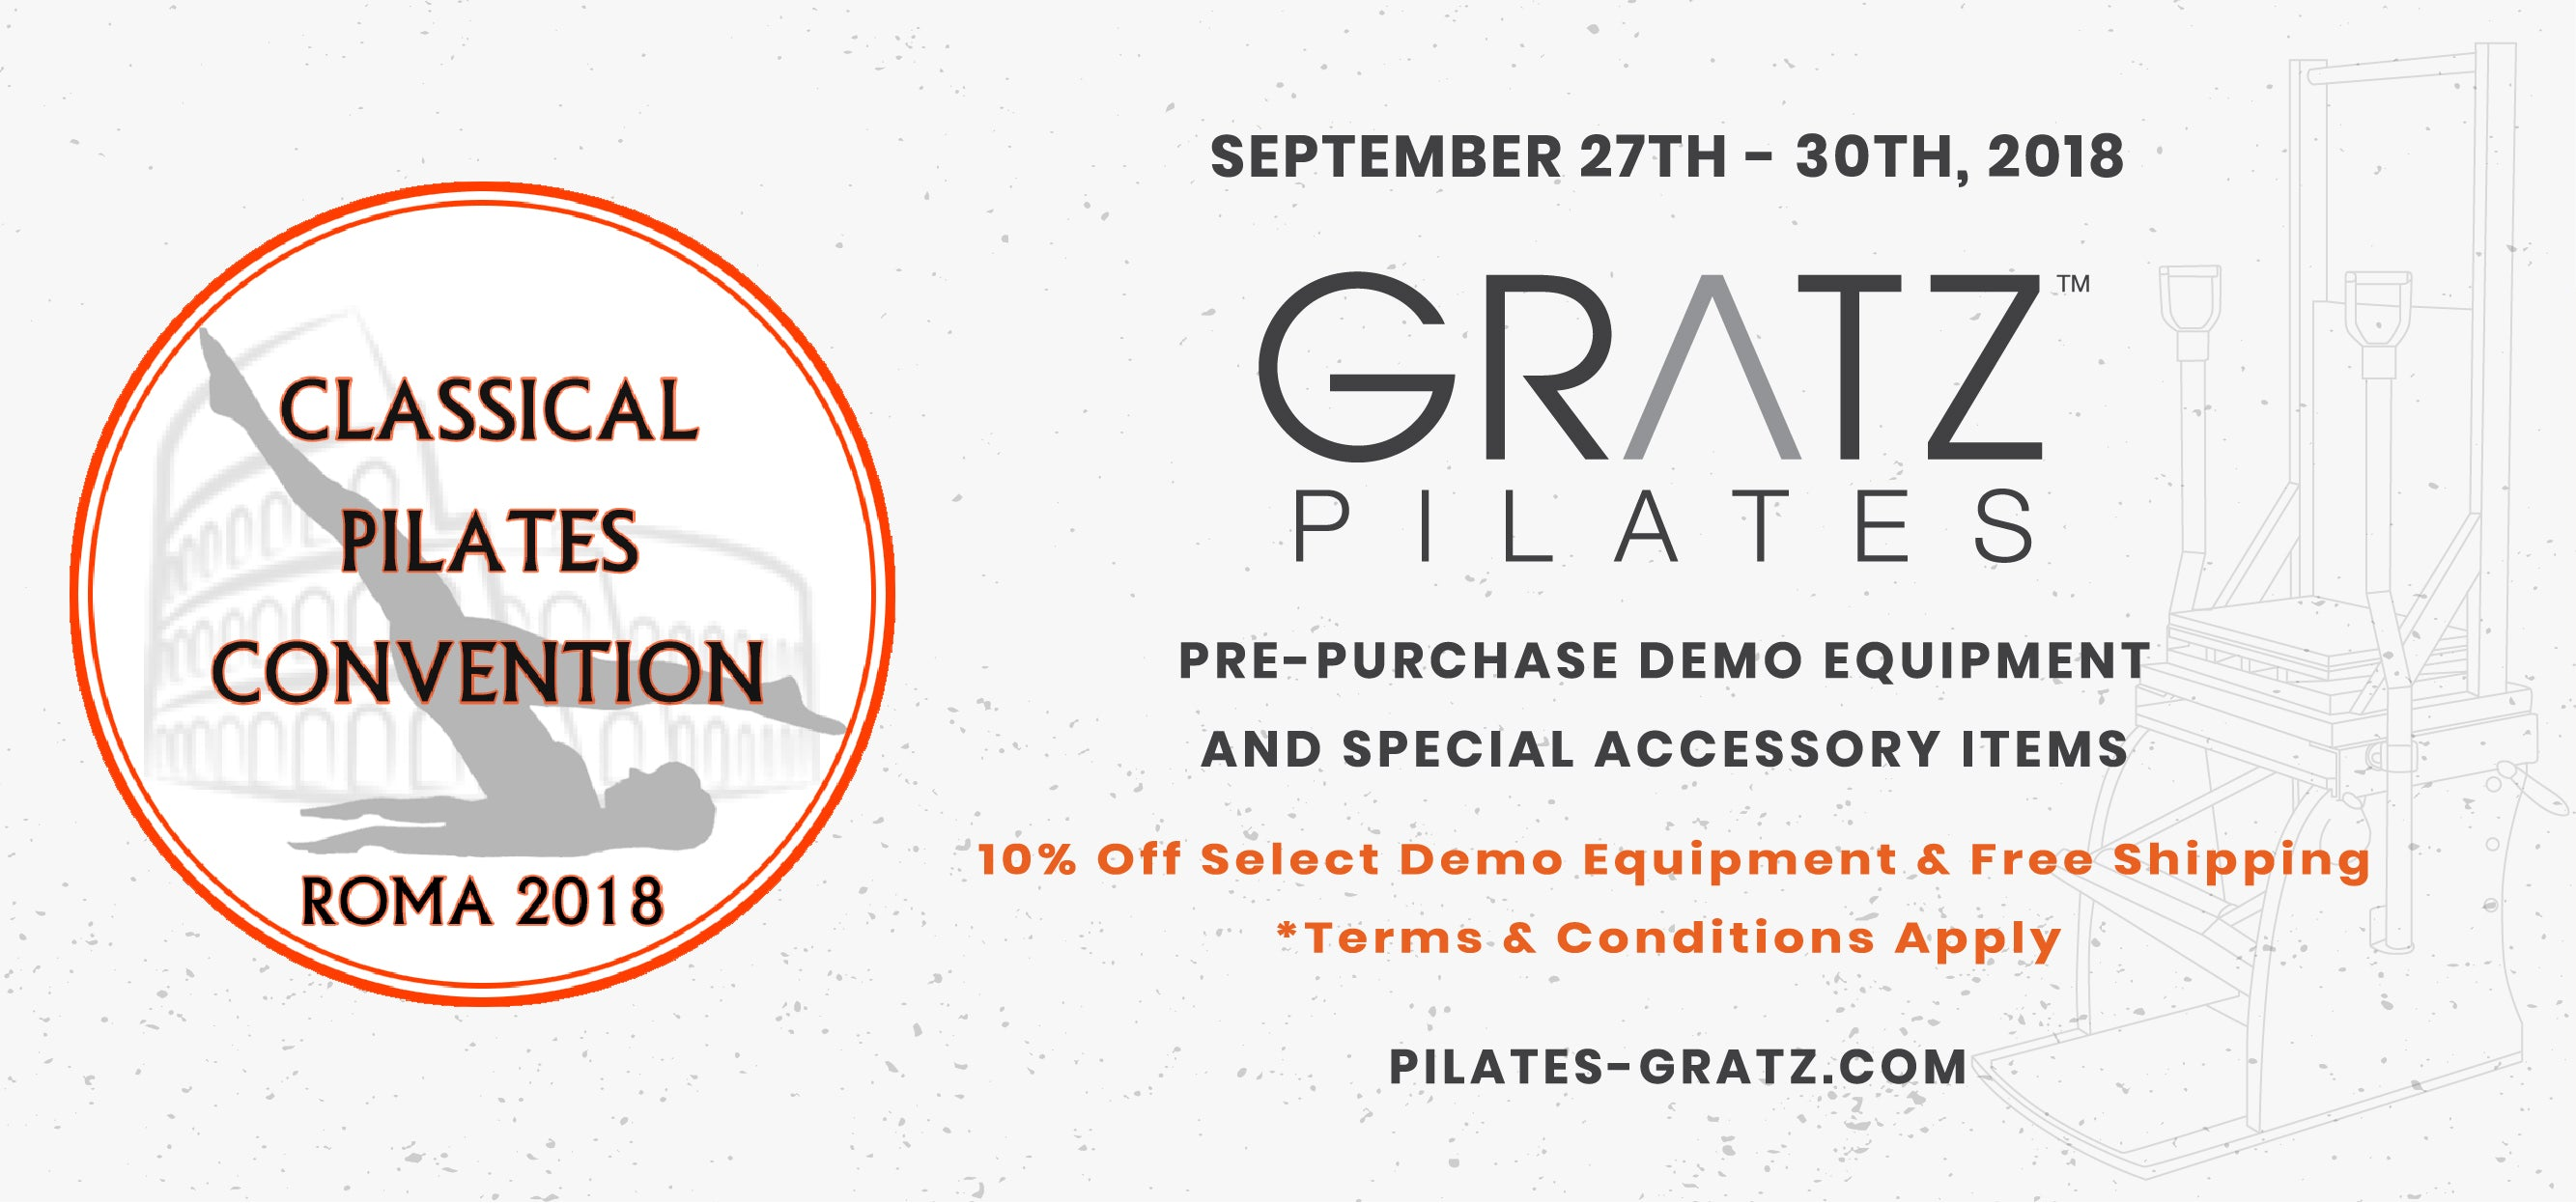 Classical Pilates Convention Rome 2018 | Available Gratz Demo Equipment For Sale